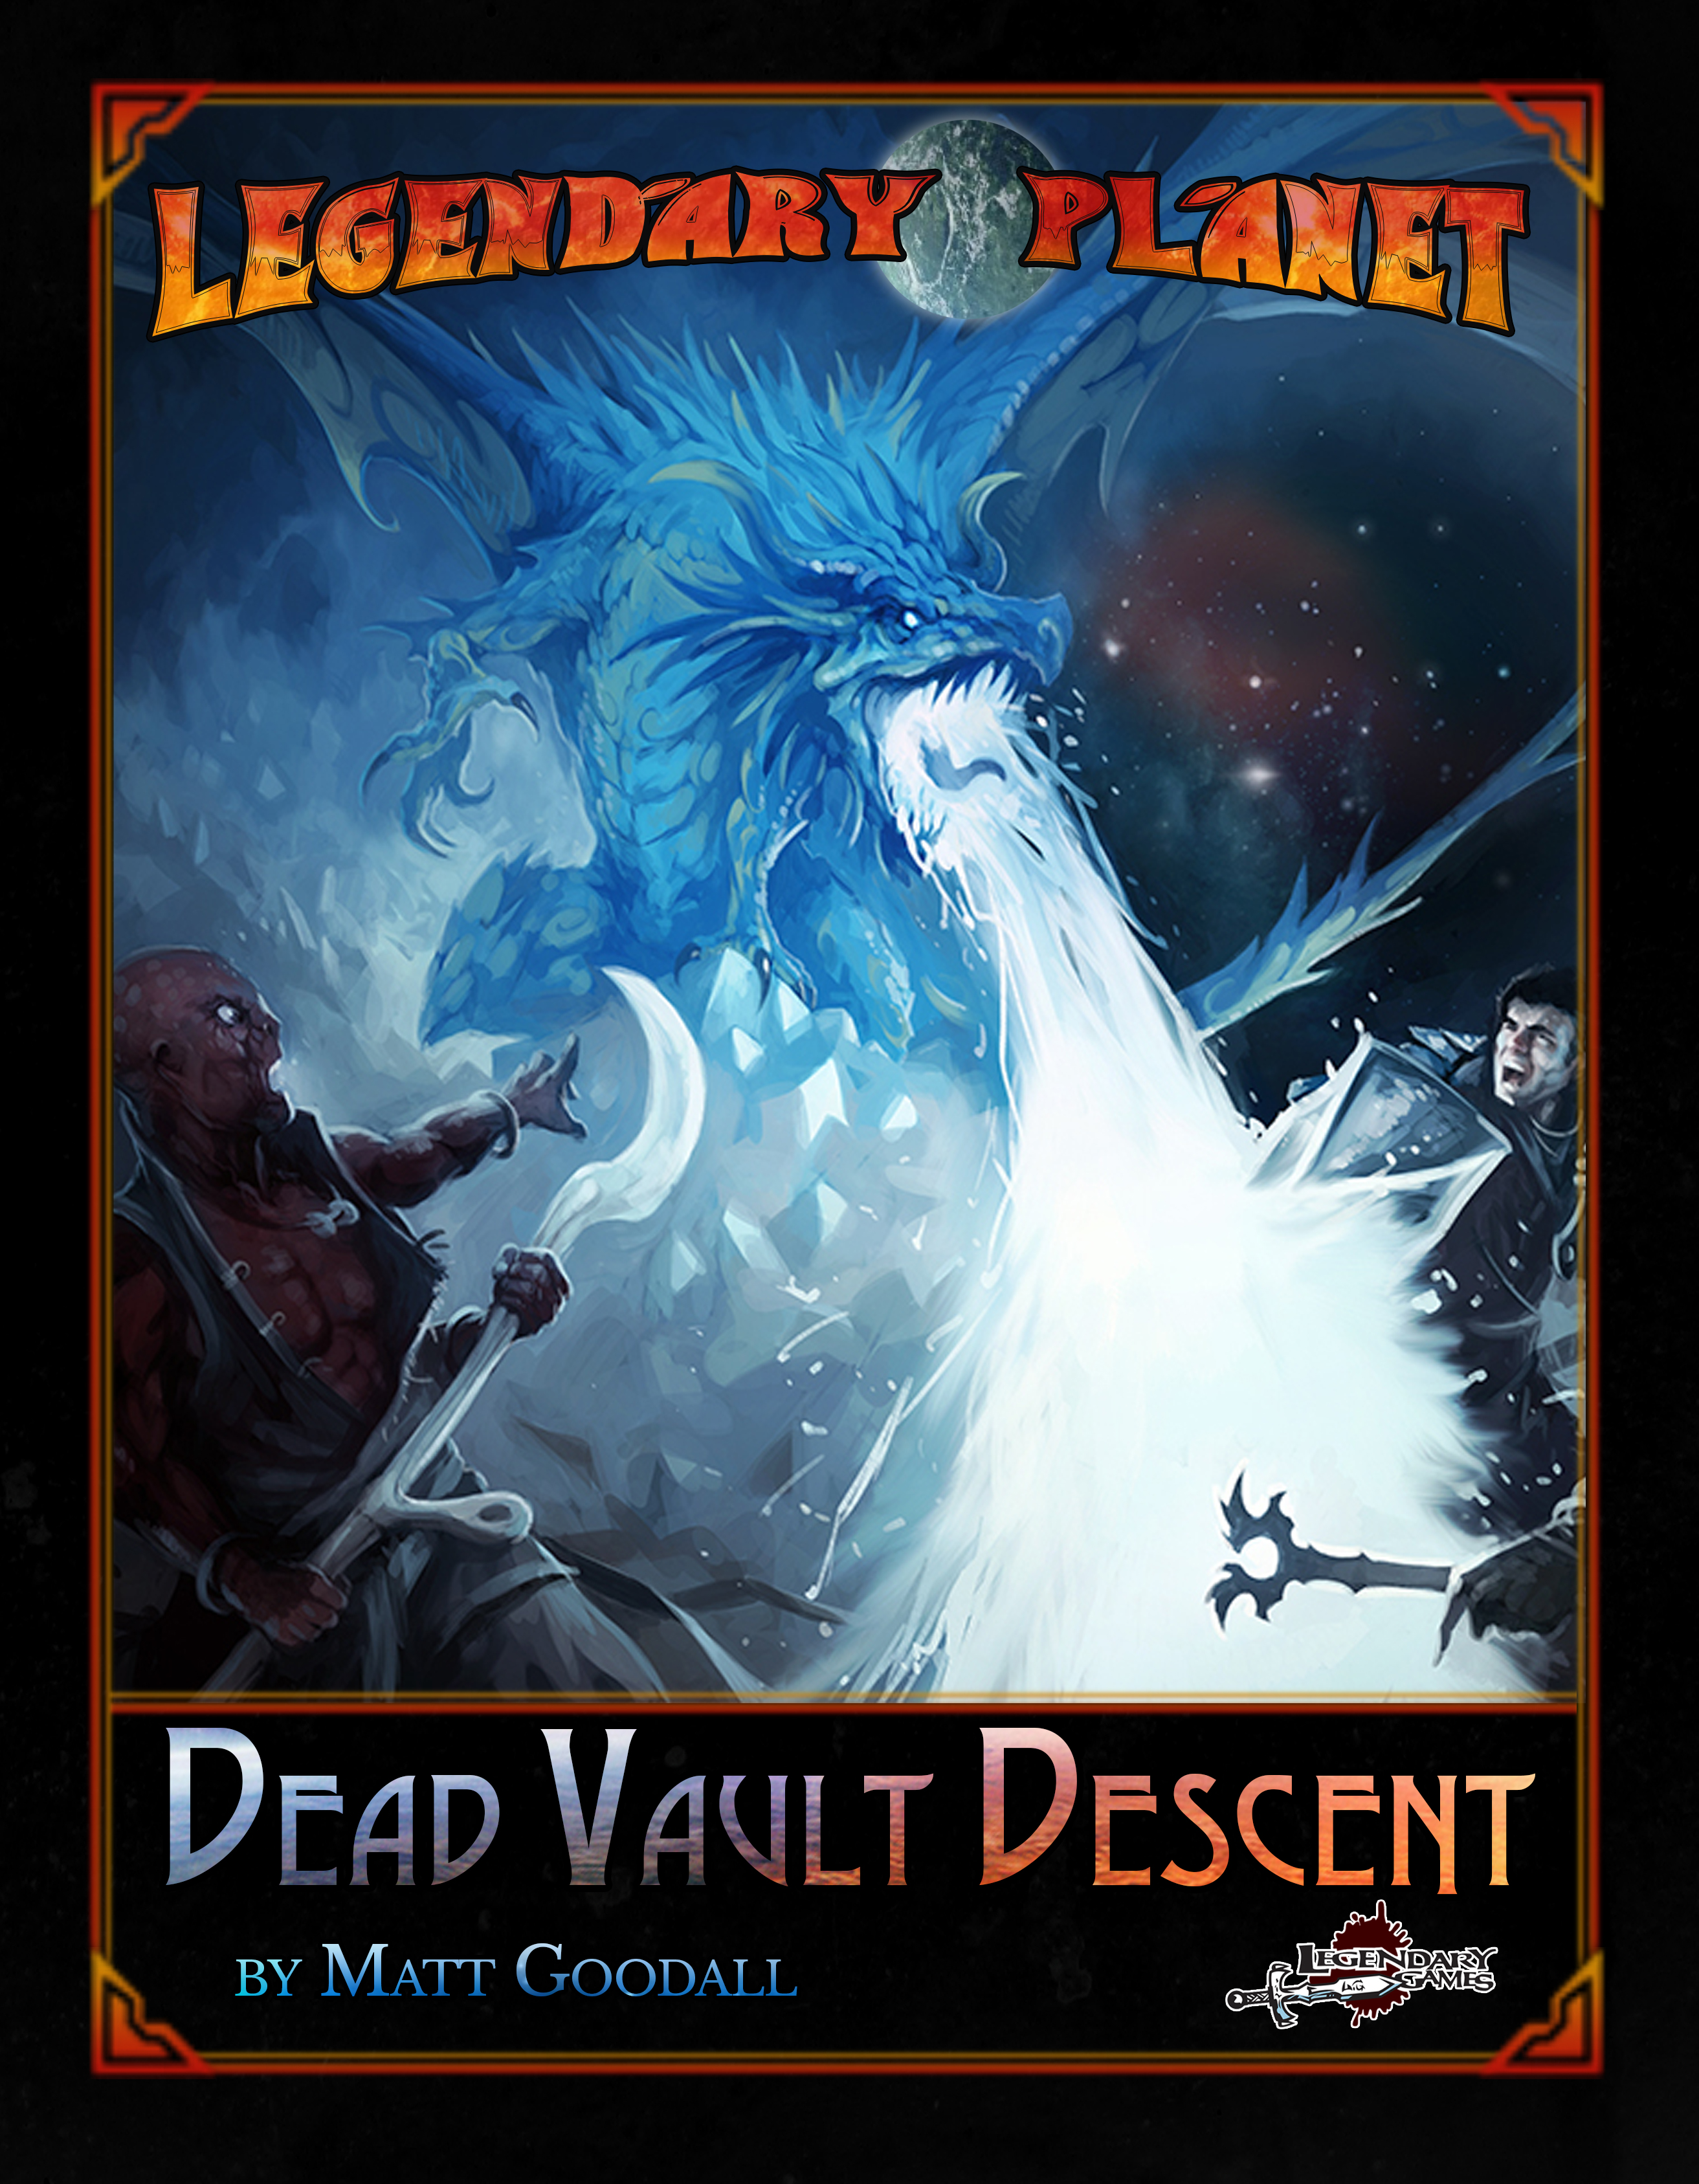 Legendary Planet: Dead Vault Descent